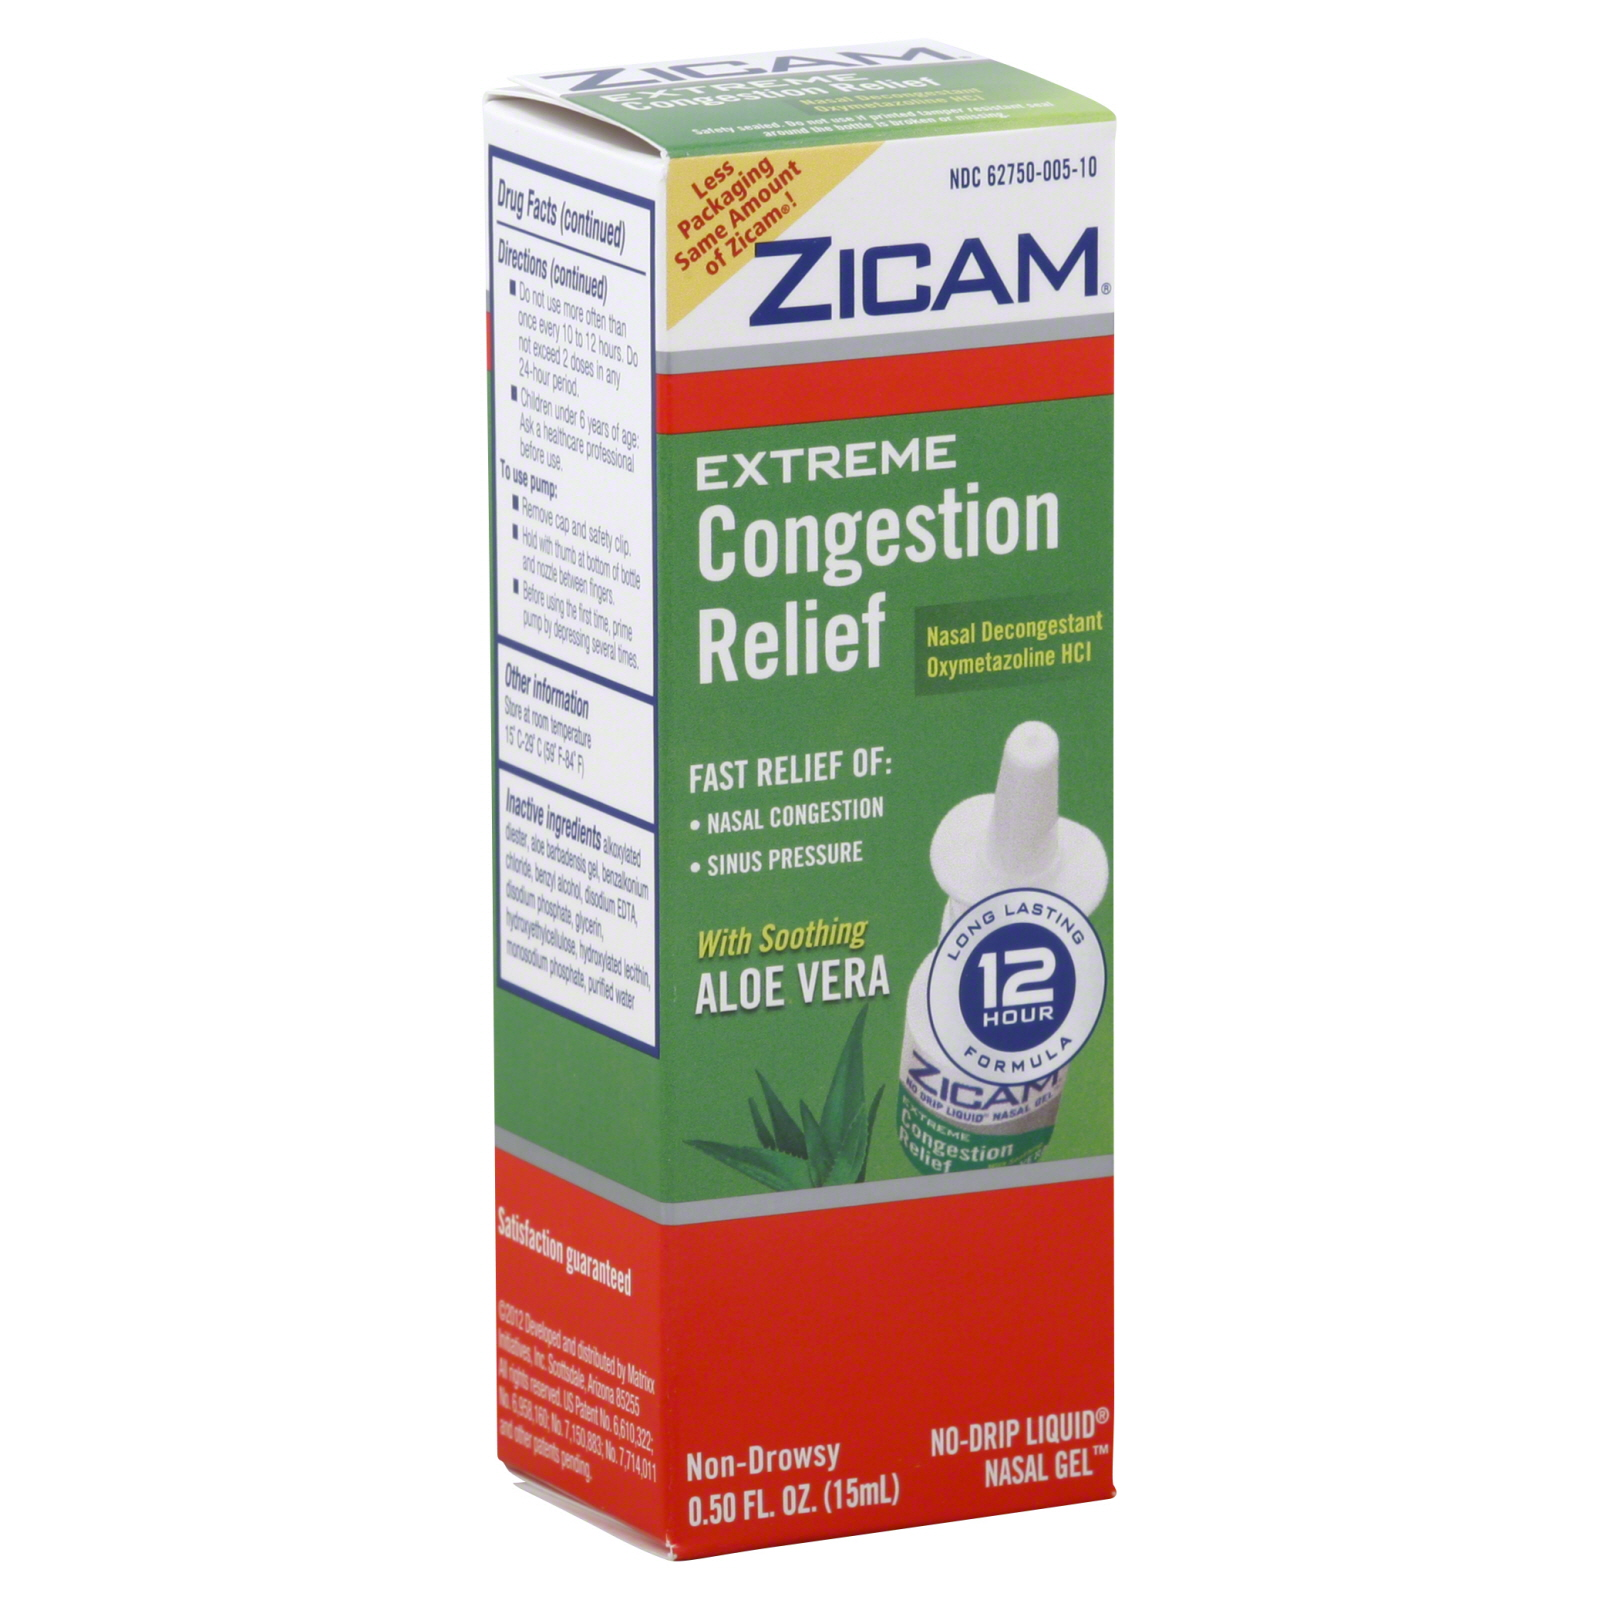 Congestion Relief, Extreme, No-Drip Liquid Nasal Gel, 0.5 fl oz (15 ml)